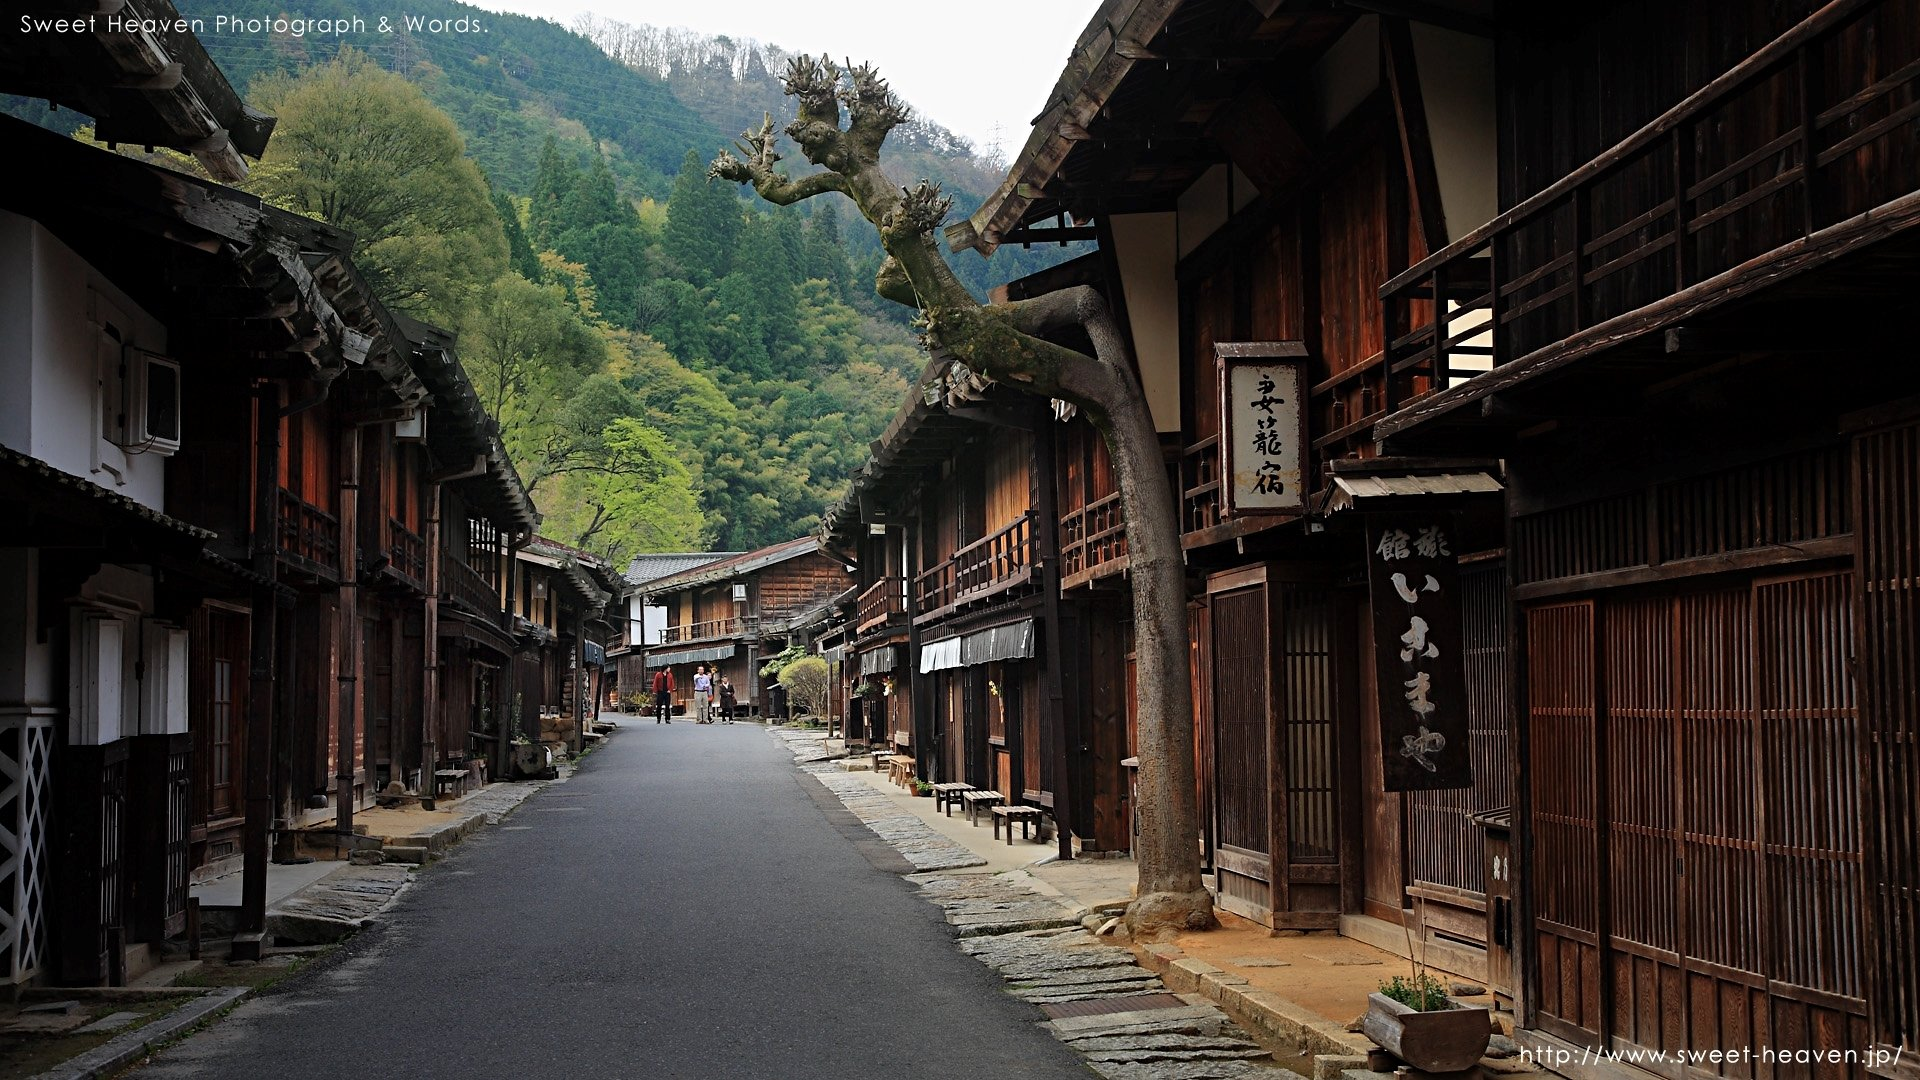 4-Day Exploration of Classic Towns in Japan - Japan Itinerary